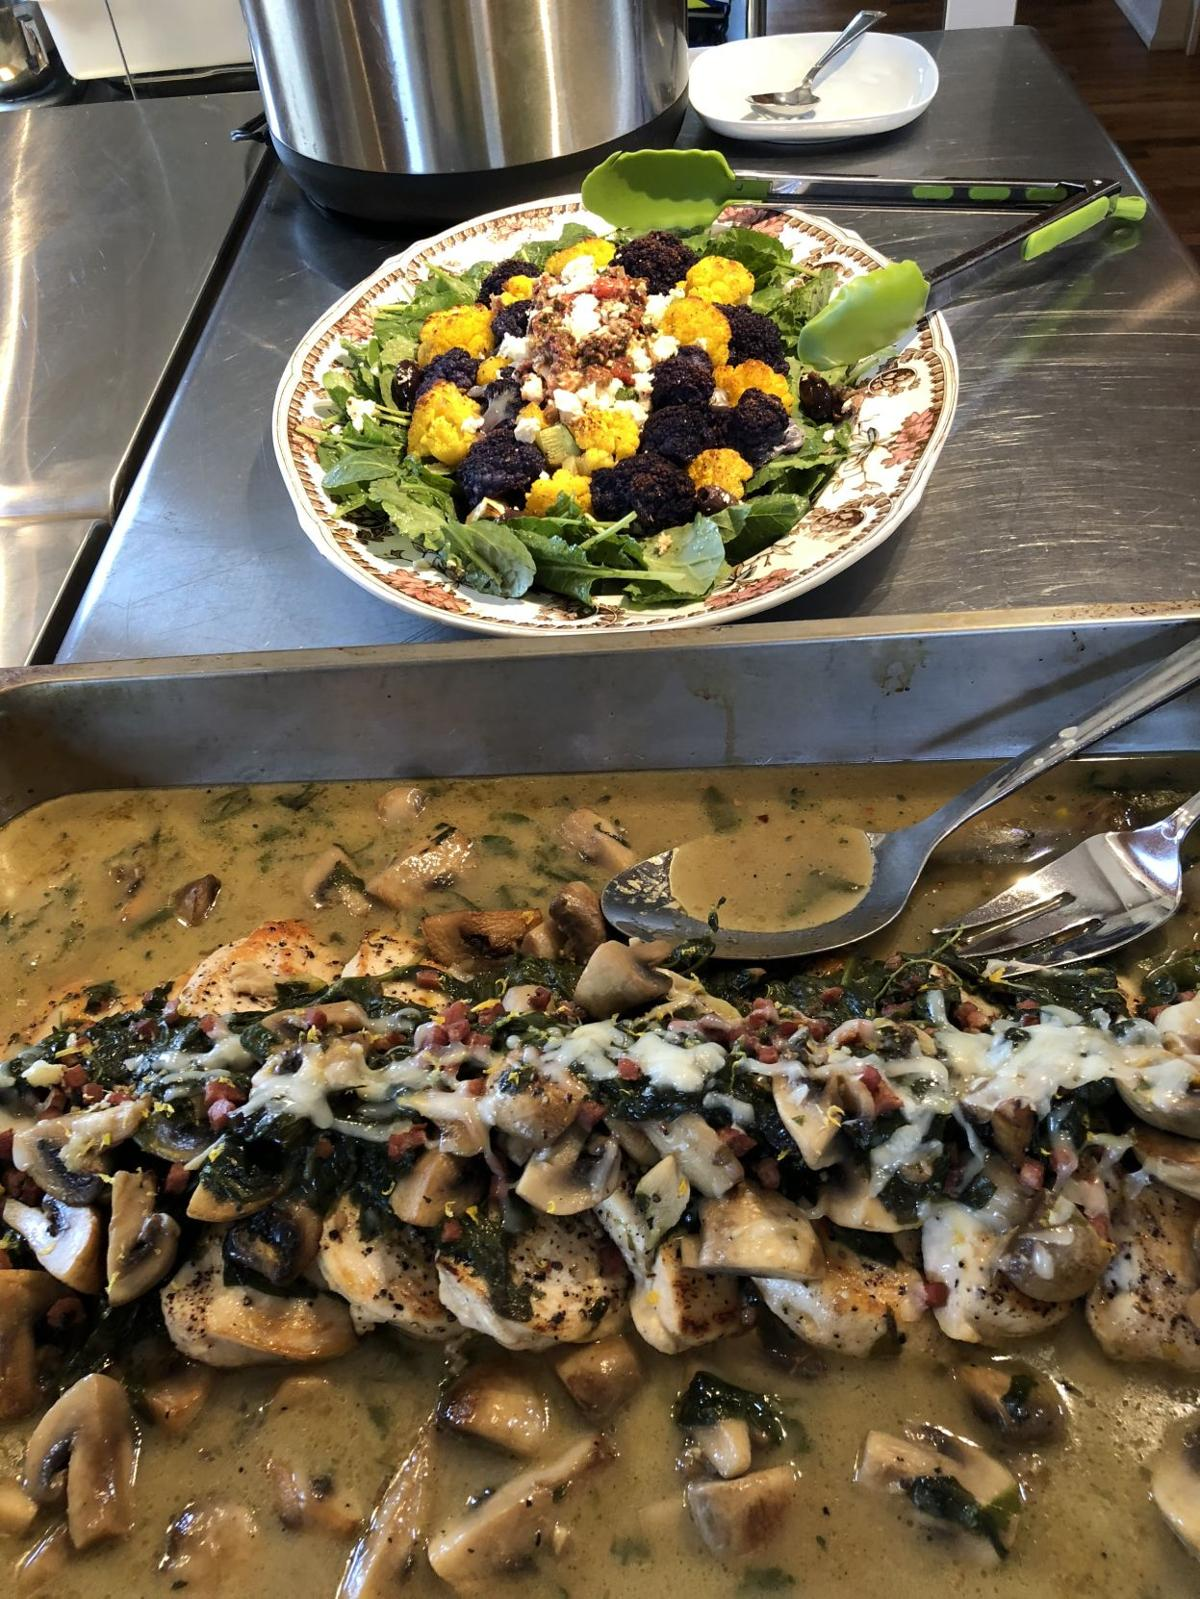 Colorado Springs chef offers lunch and learn class